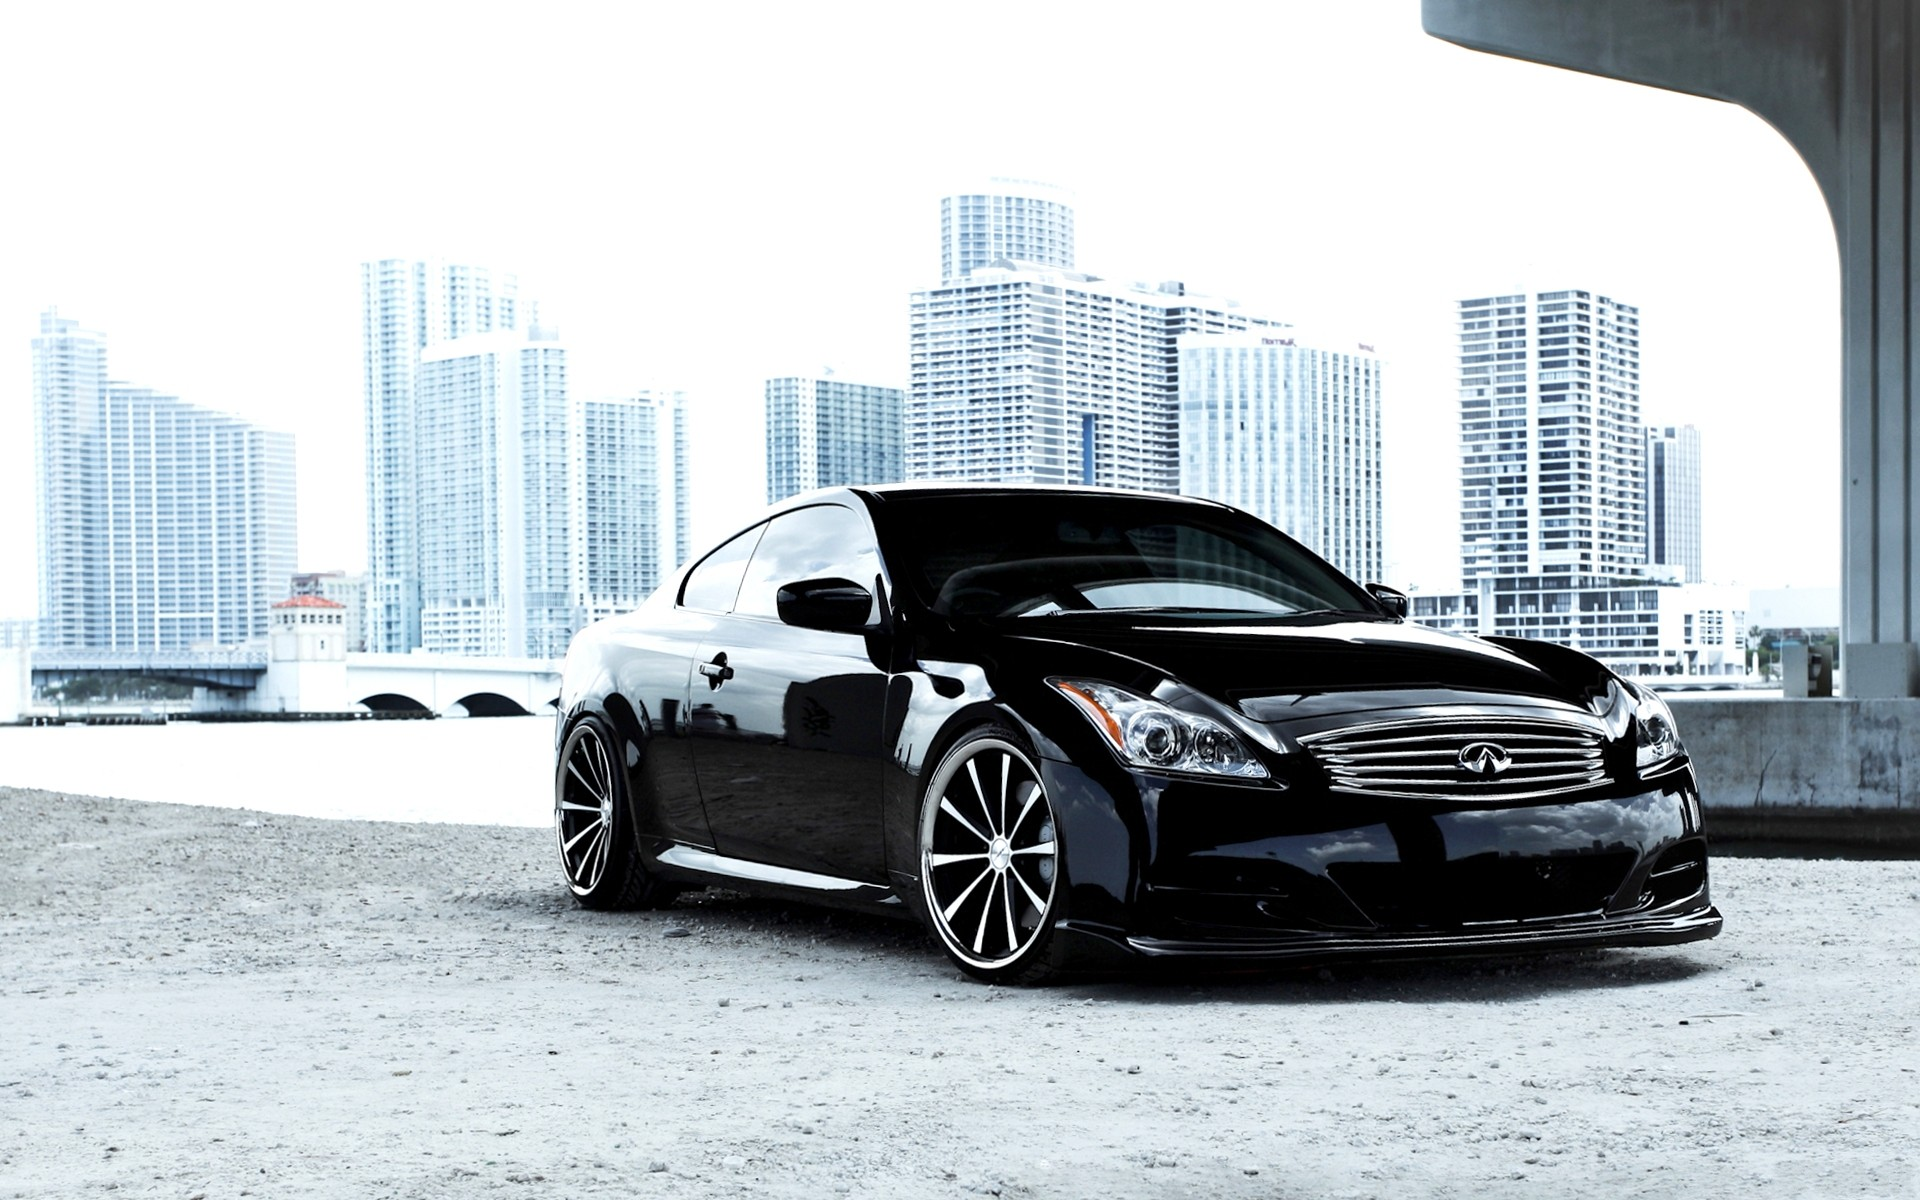 Infiniti Full HD Wallpaper And Background Image